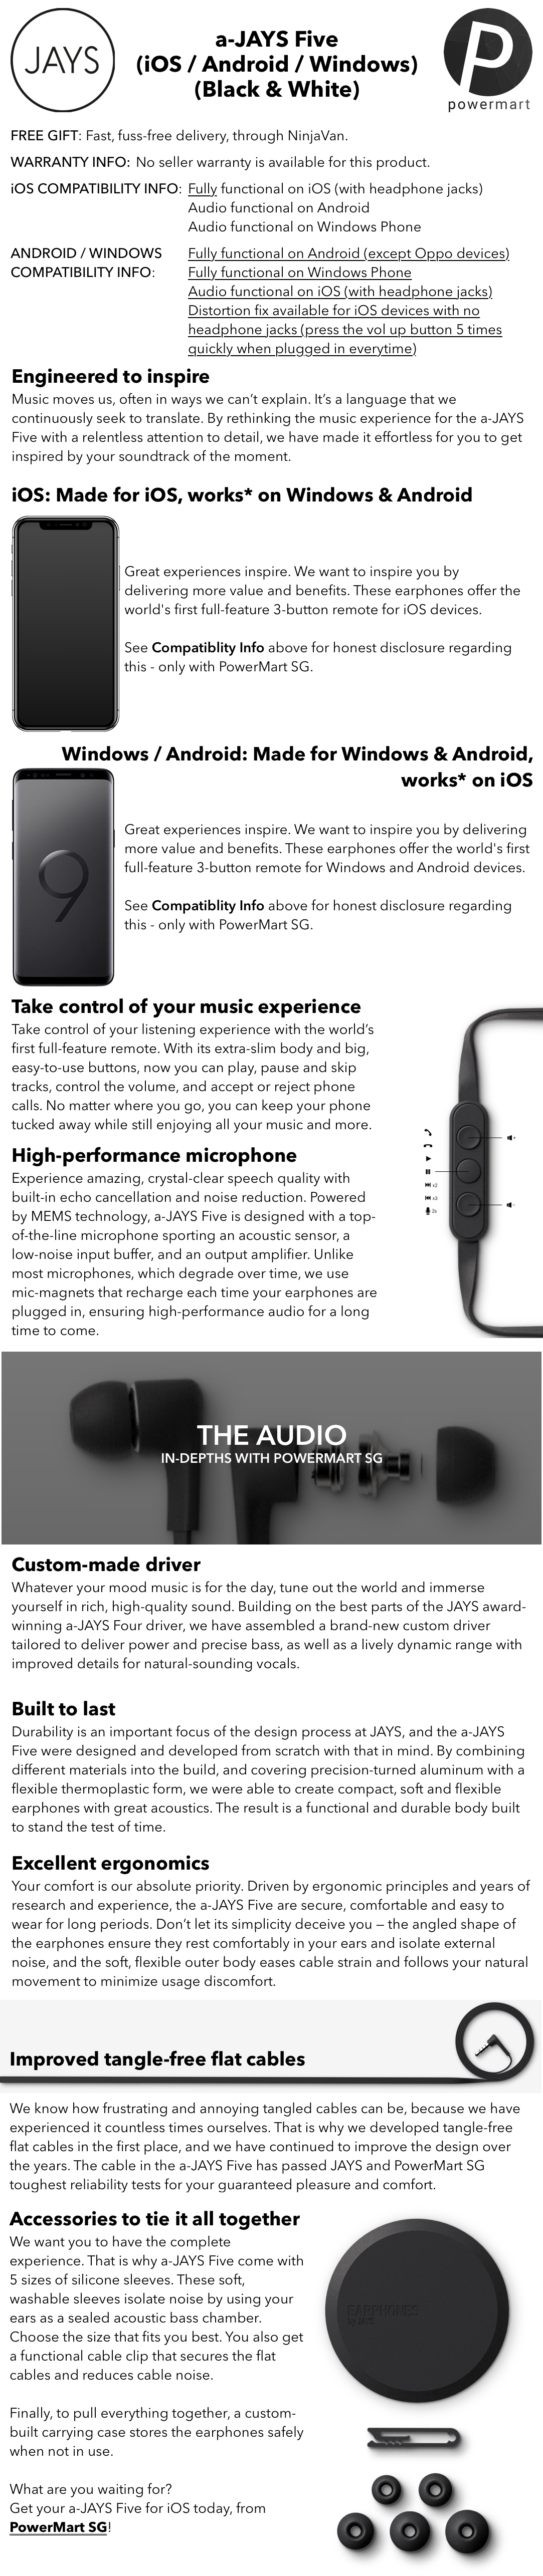 a-JAYS Five In-Ear Headphones for iOS / Windows (works with Android) -  Black & White